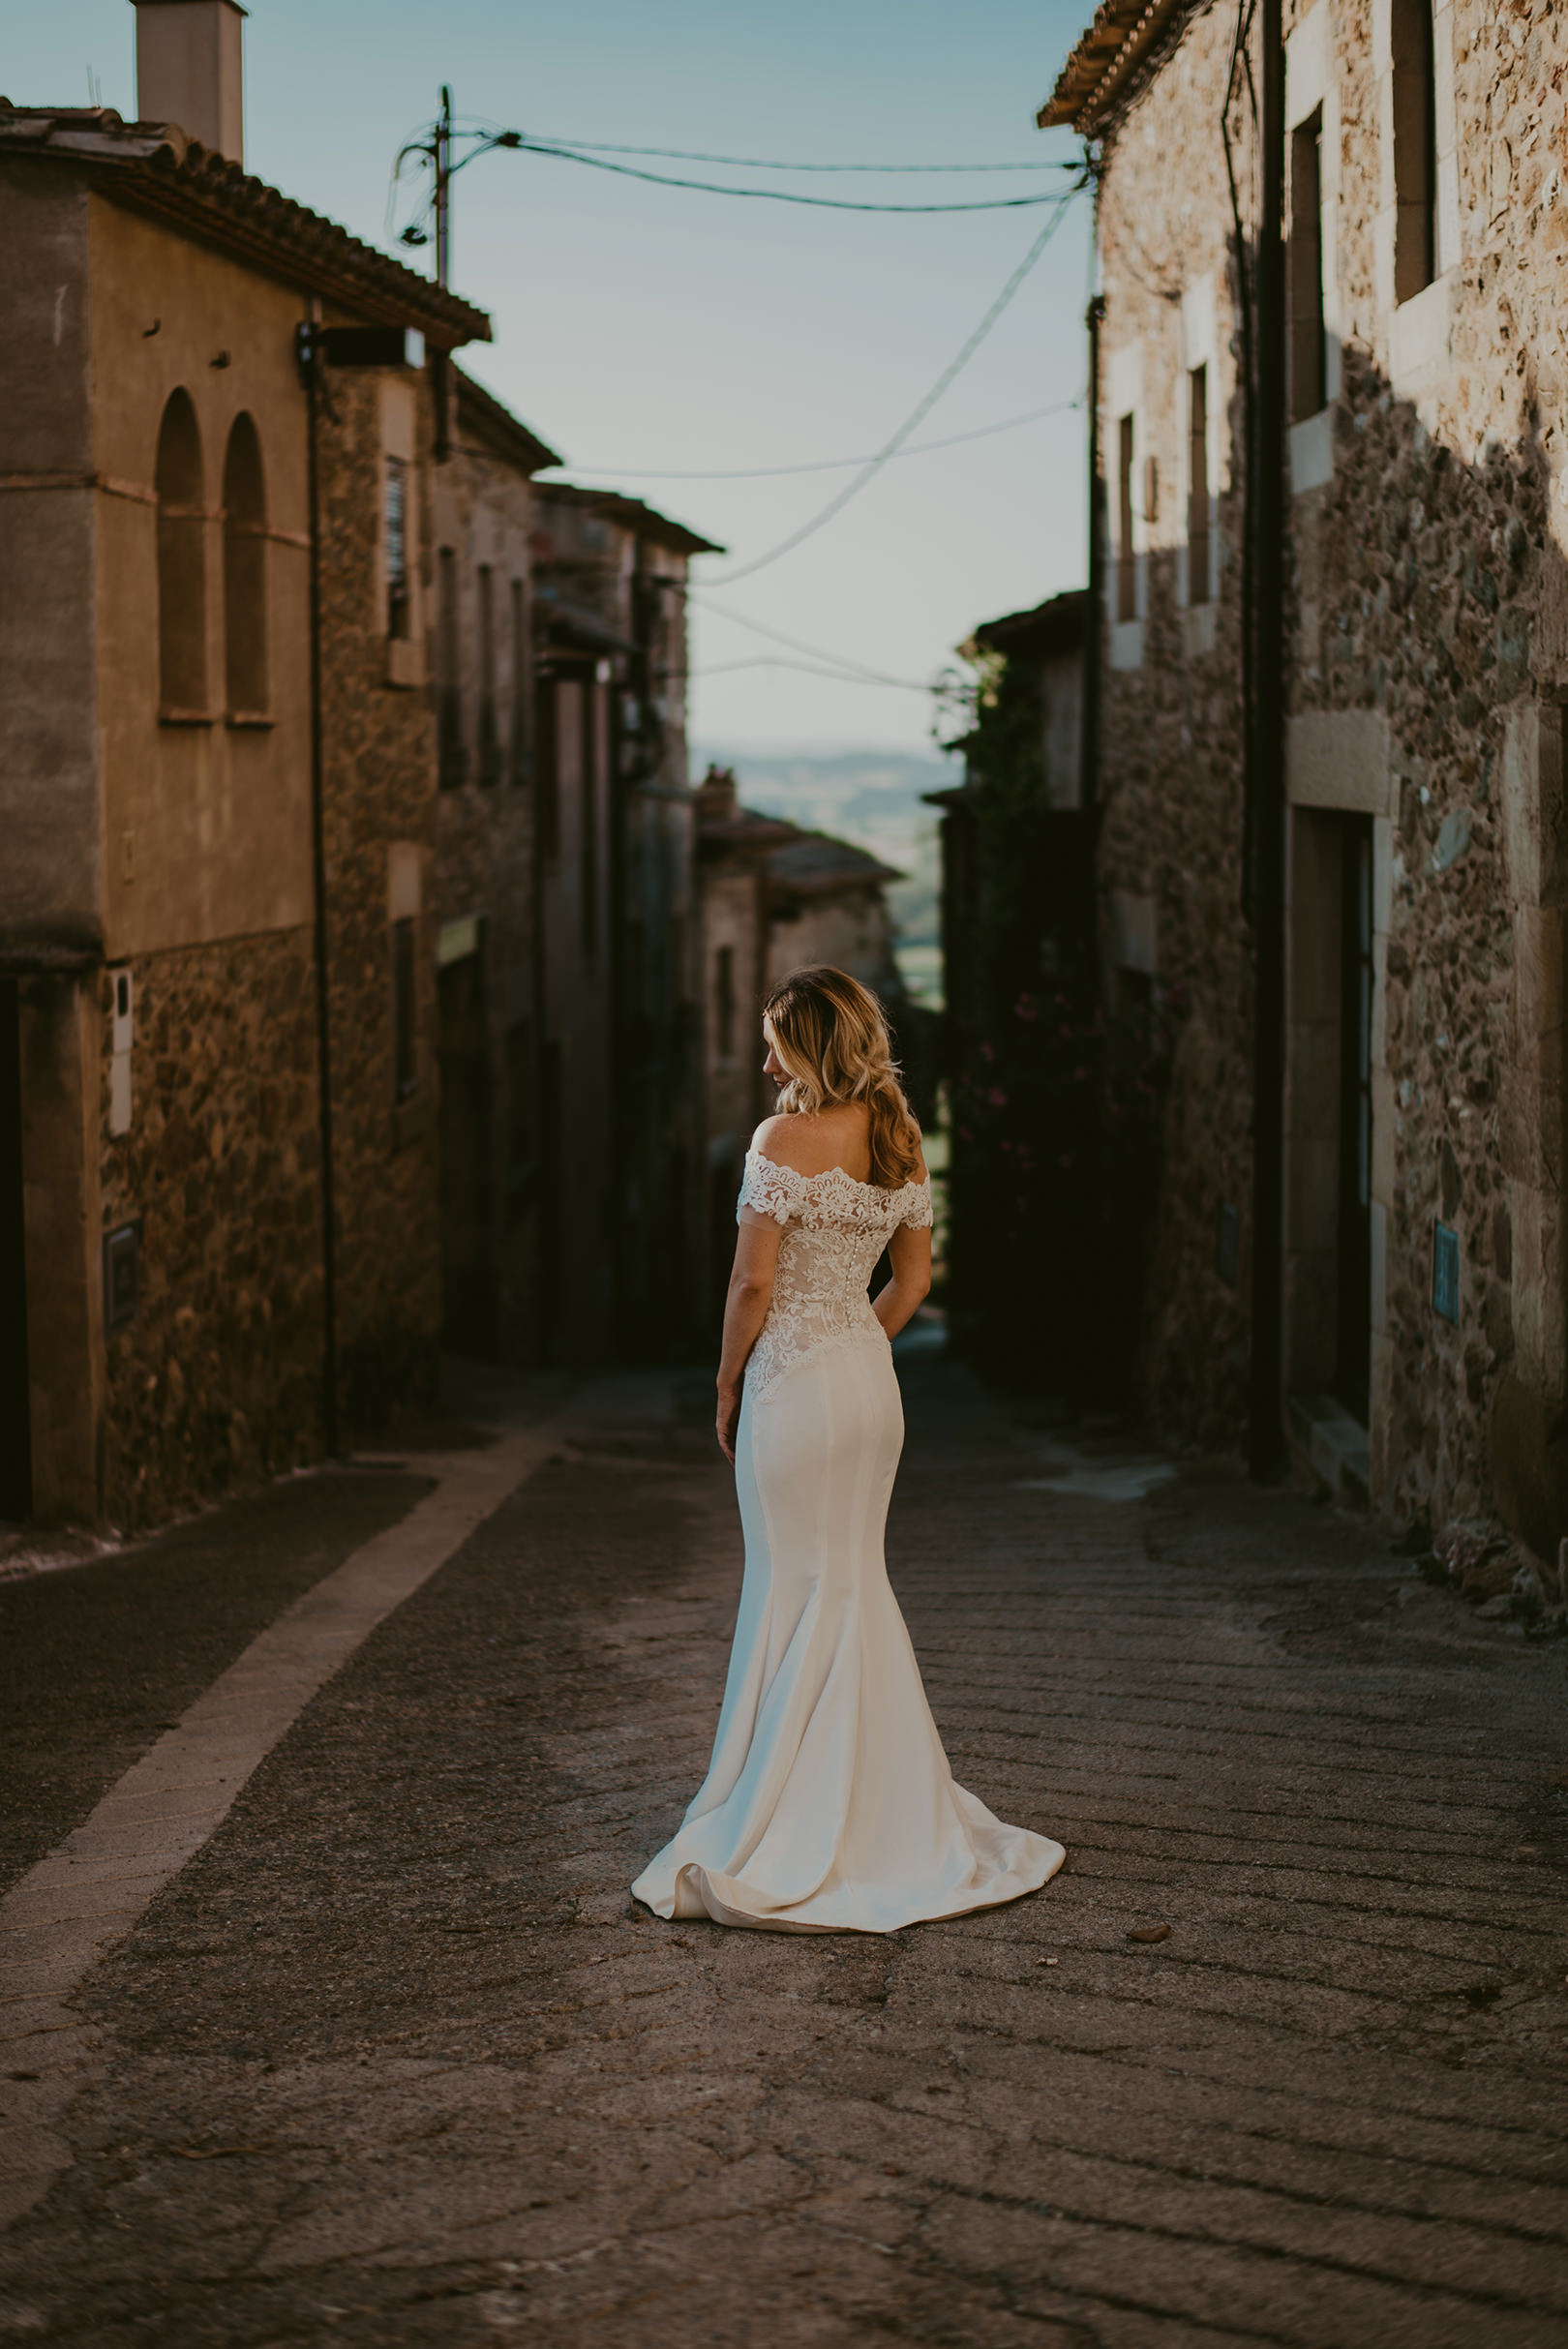 Gorgeous Louicol Designs wedding dress at Castell d'Emporda